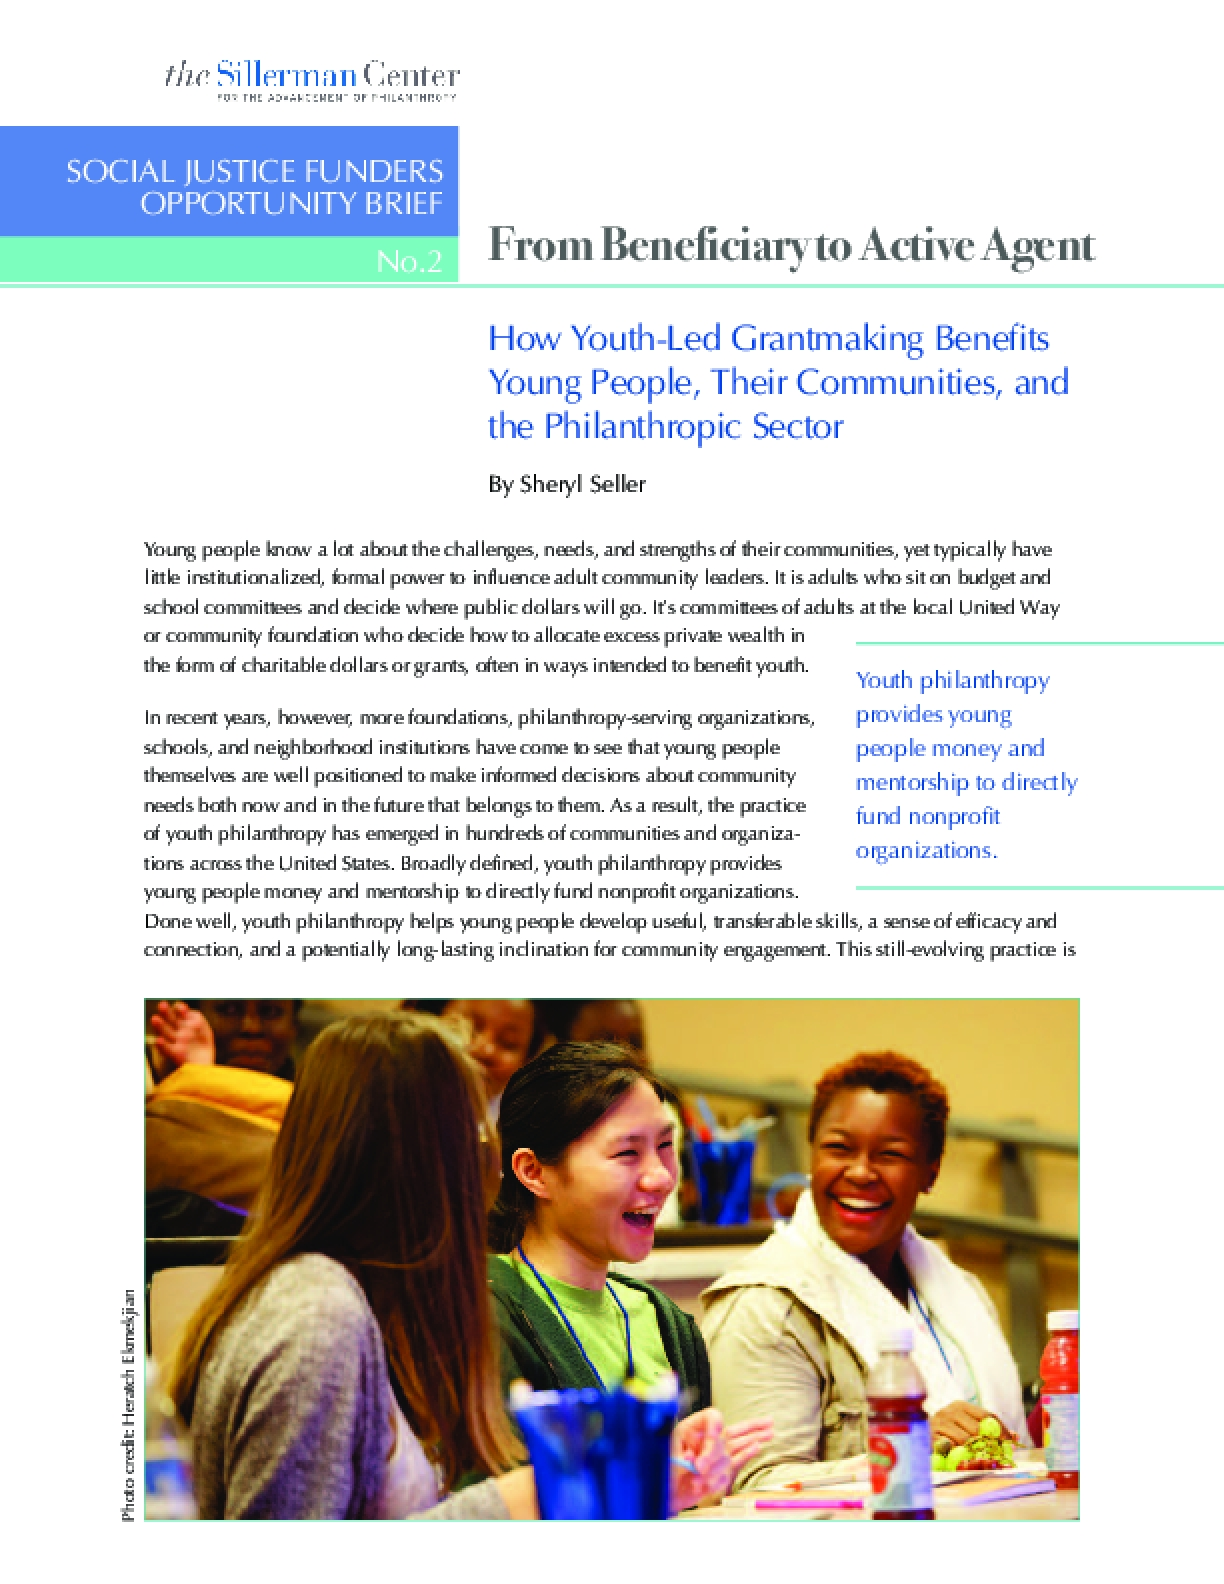 How Youth-Led Grantmaking Benefits Young People, Their Communities, and the Philanthropic Sector